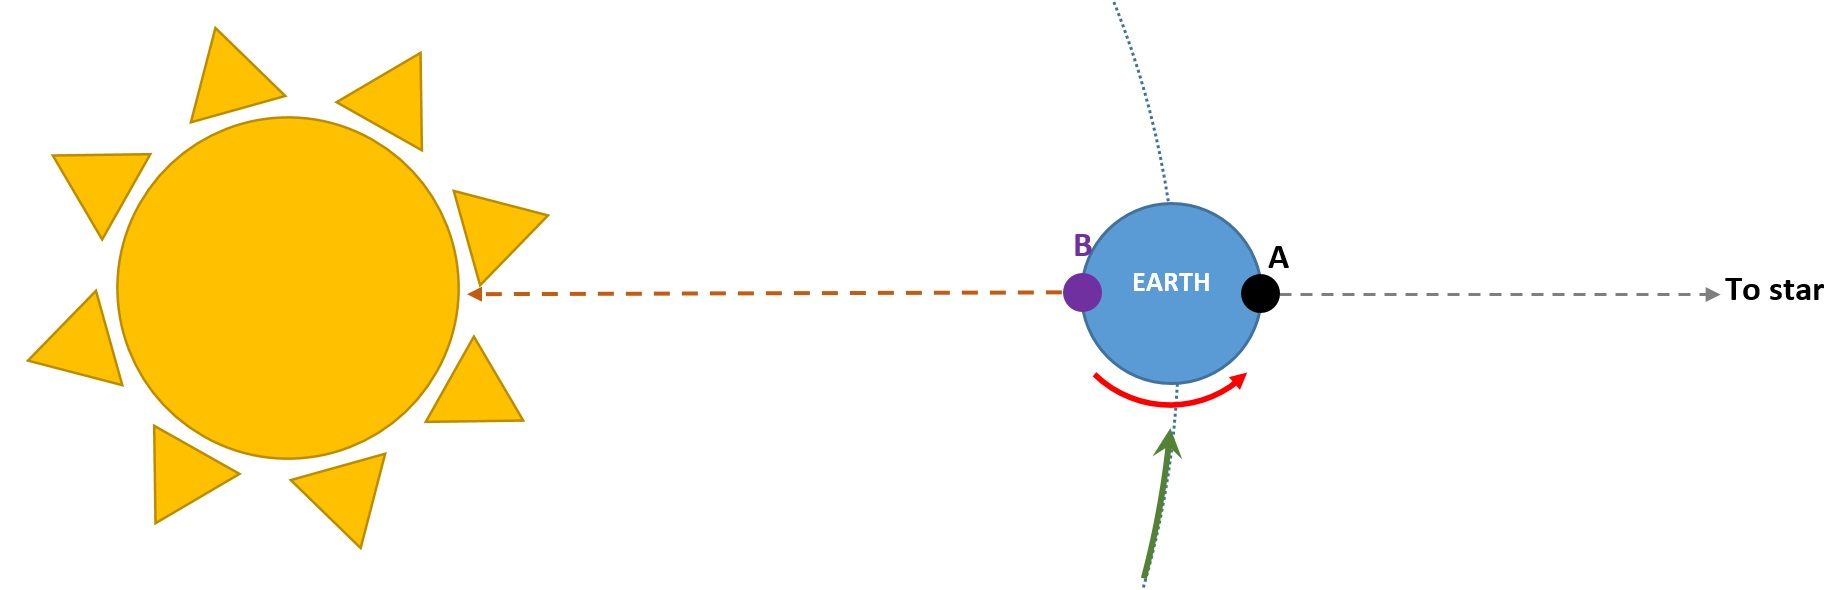 In this diagram the Earth's rotational motion on its own axis is indicated by the red arrow, while its orbital revolution about the sun is indicated by the green arrow.